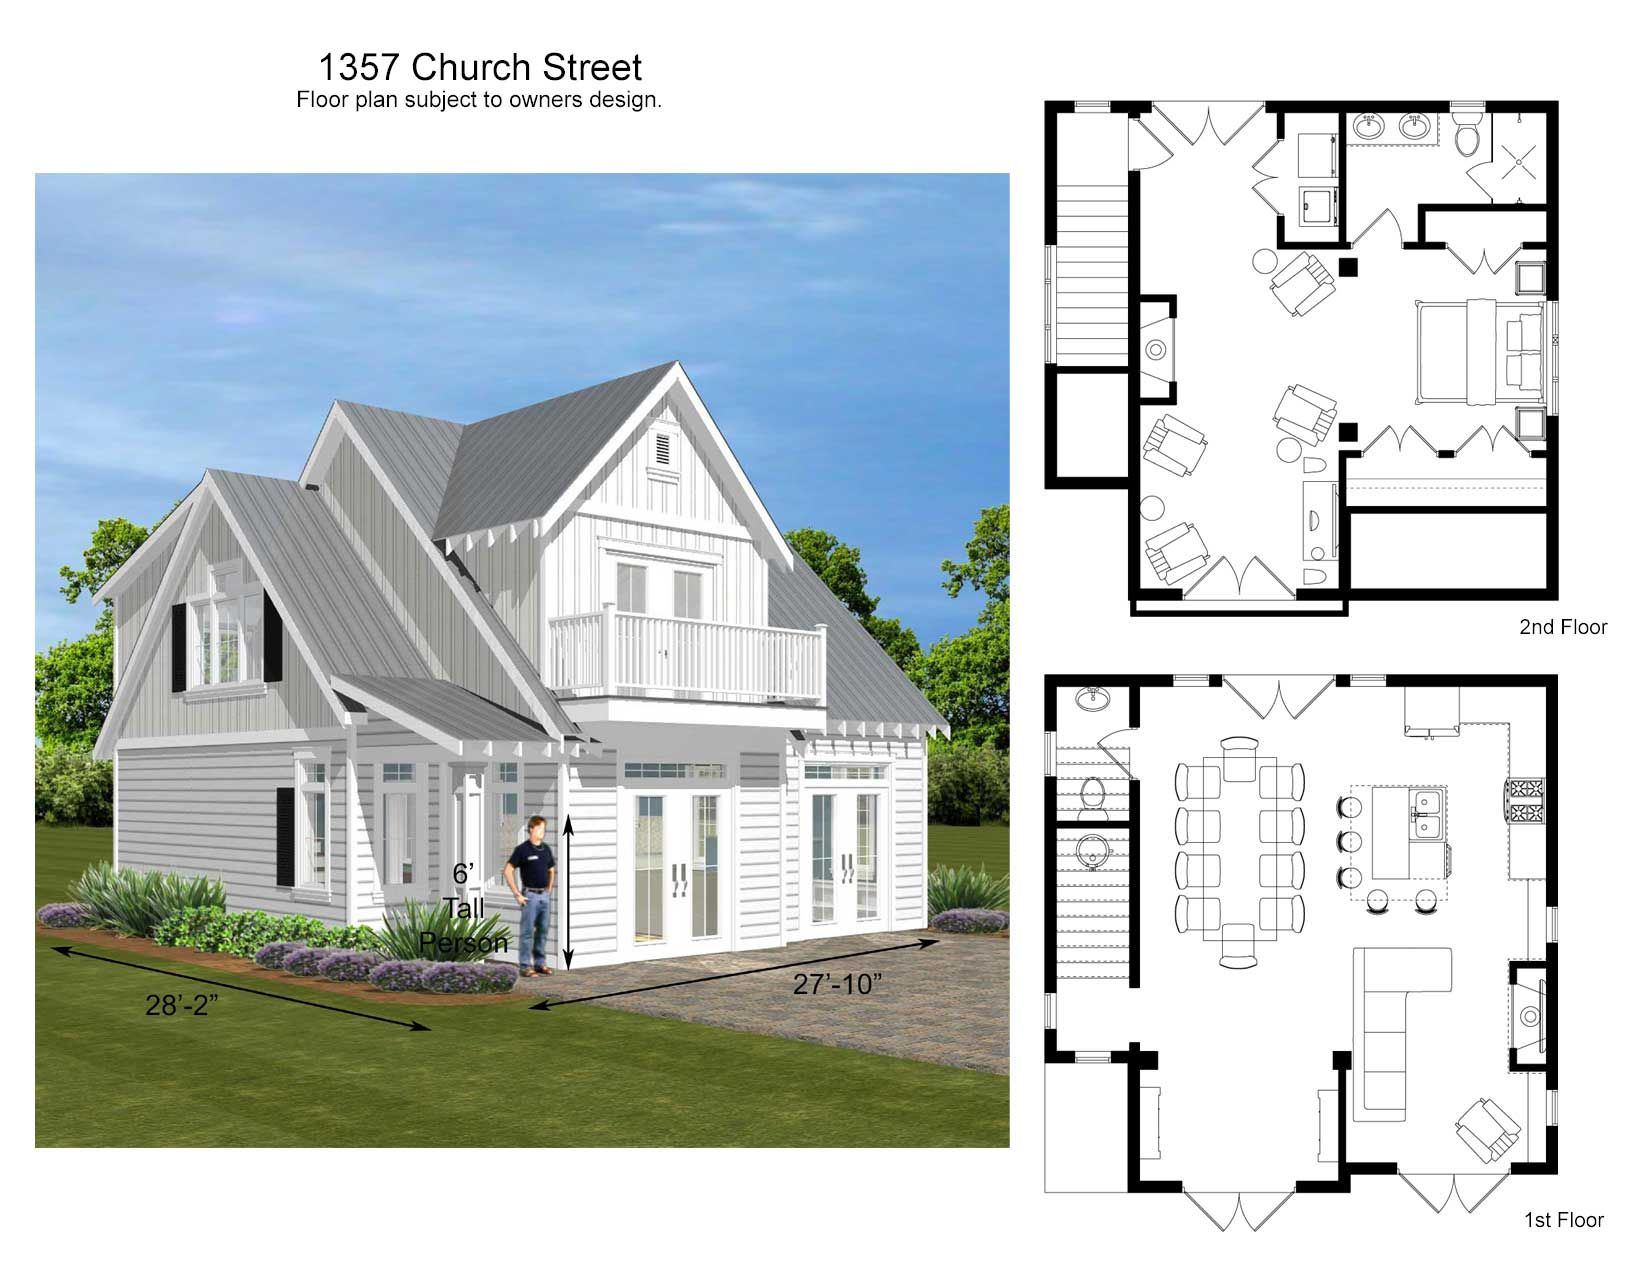 Build it as a garage apartment or two story accessory dwelling